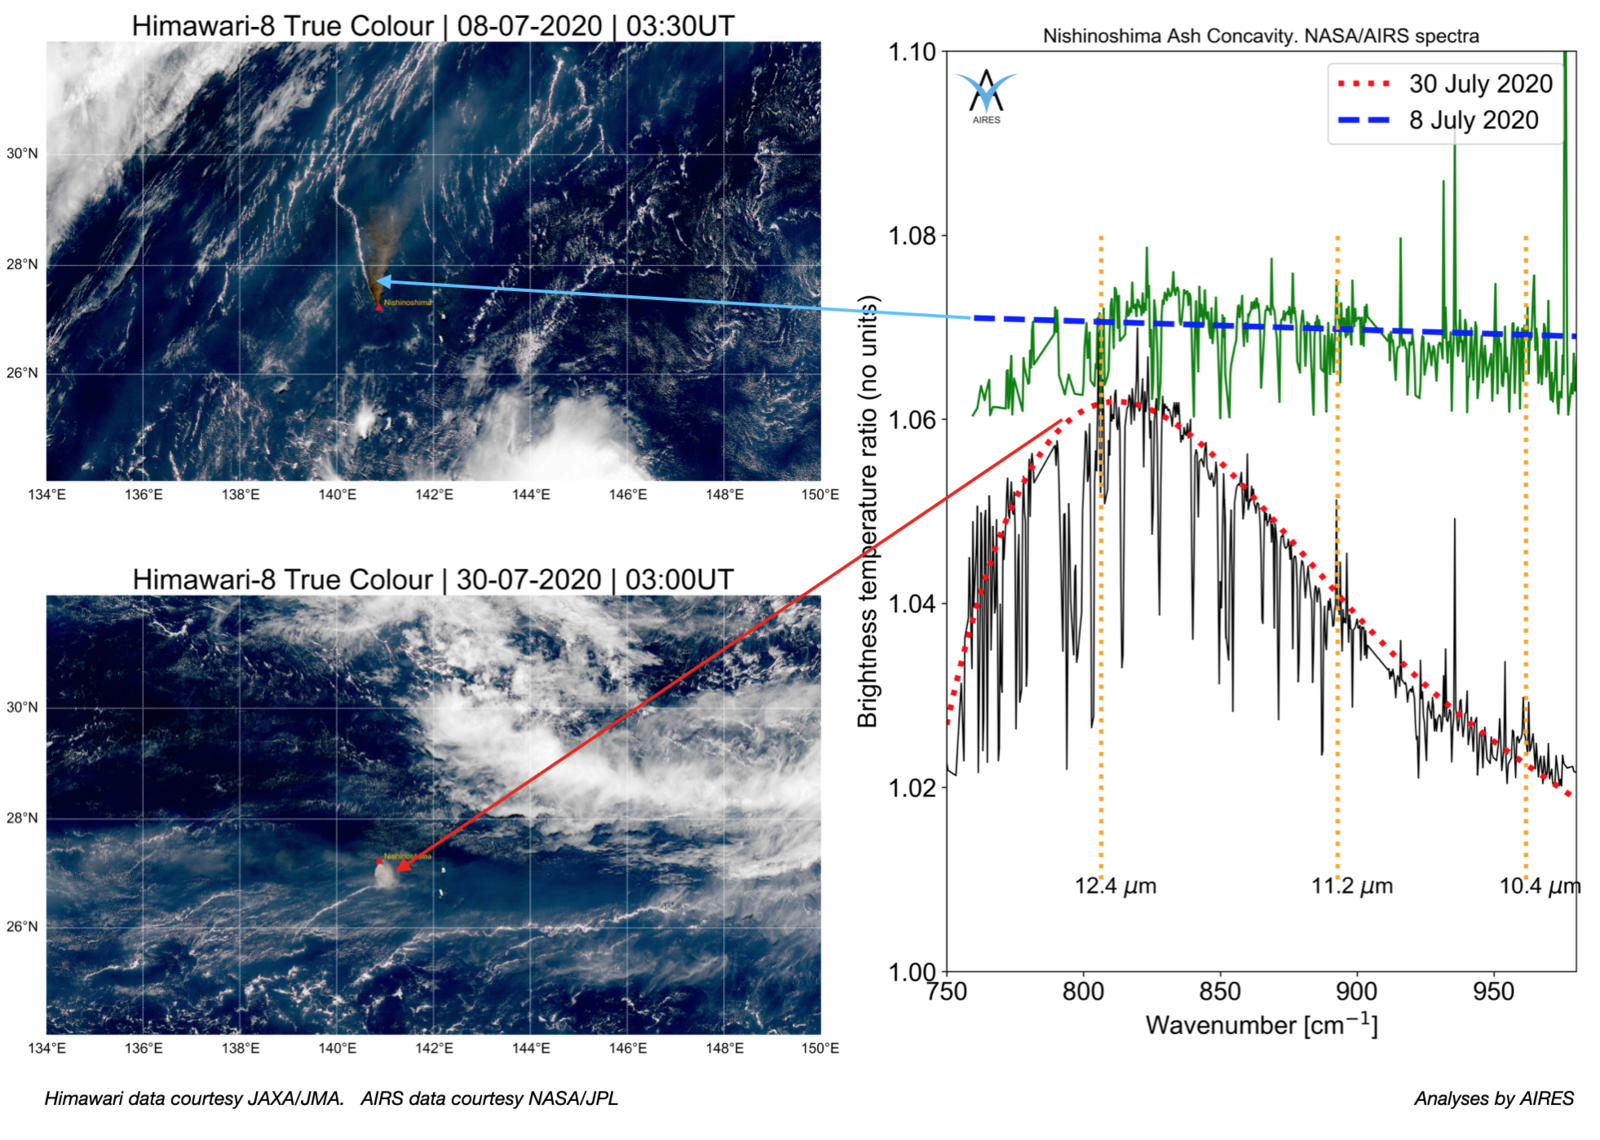 Nishinoshima - Noticeable colour changes in Himawari and MODIS images of the July 2020 plume suggest something is changing.  AIRS spectral shape indicates higher silicate content - Doc. AIRES